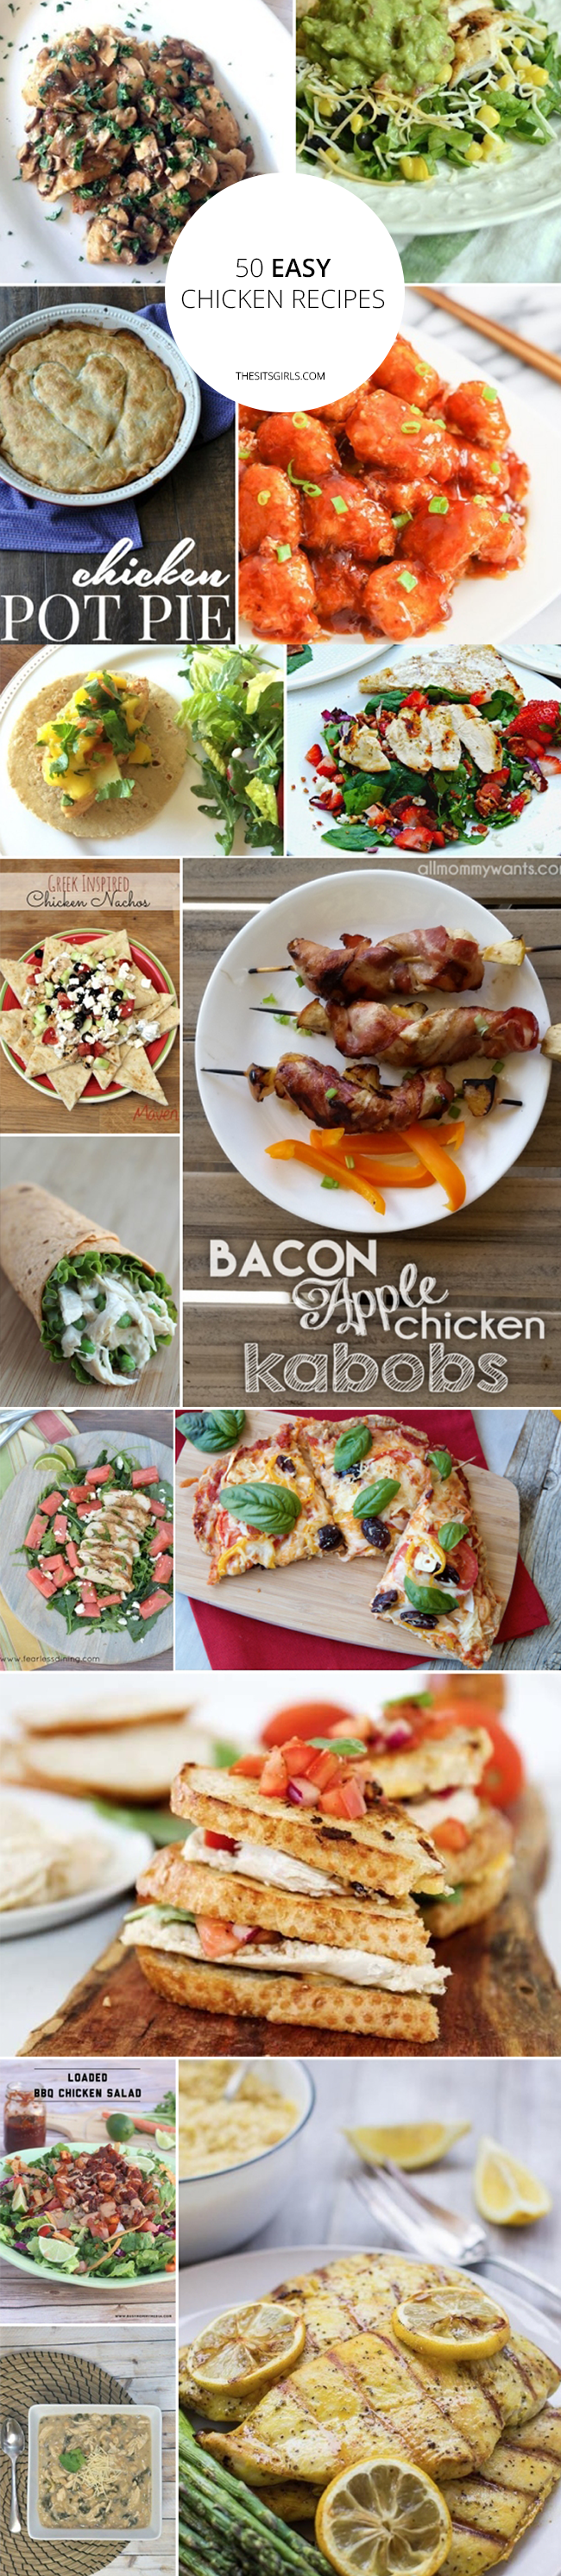 50 Fantastic & Easy Chicken Recipes | Includes baked and grilled chicken recipes and everything in between (tacos, pizzas, sandwiches, and more) to make your meal planning easy.